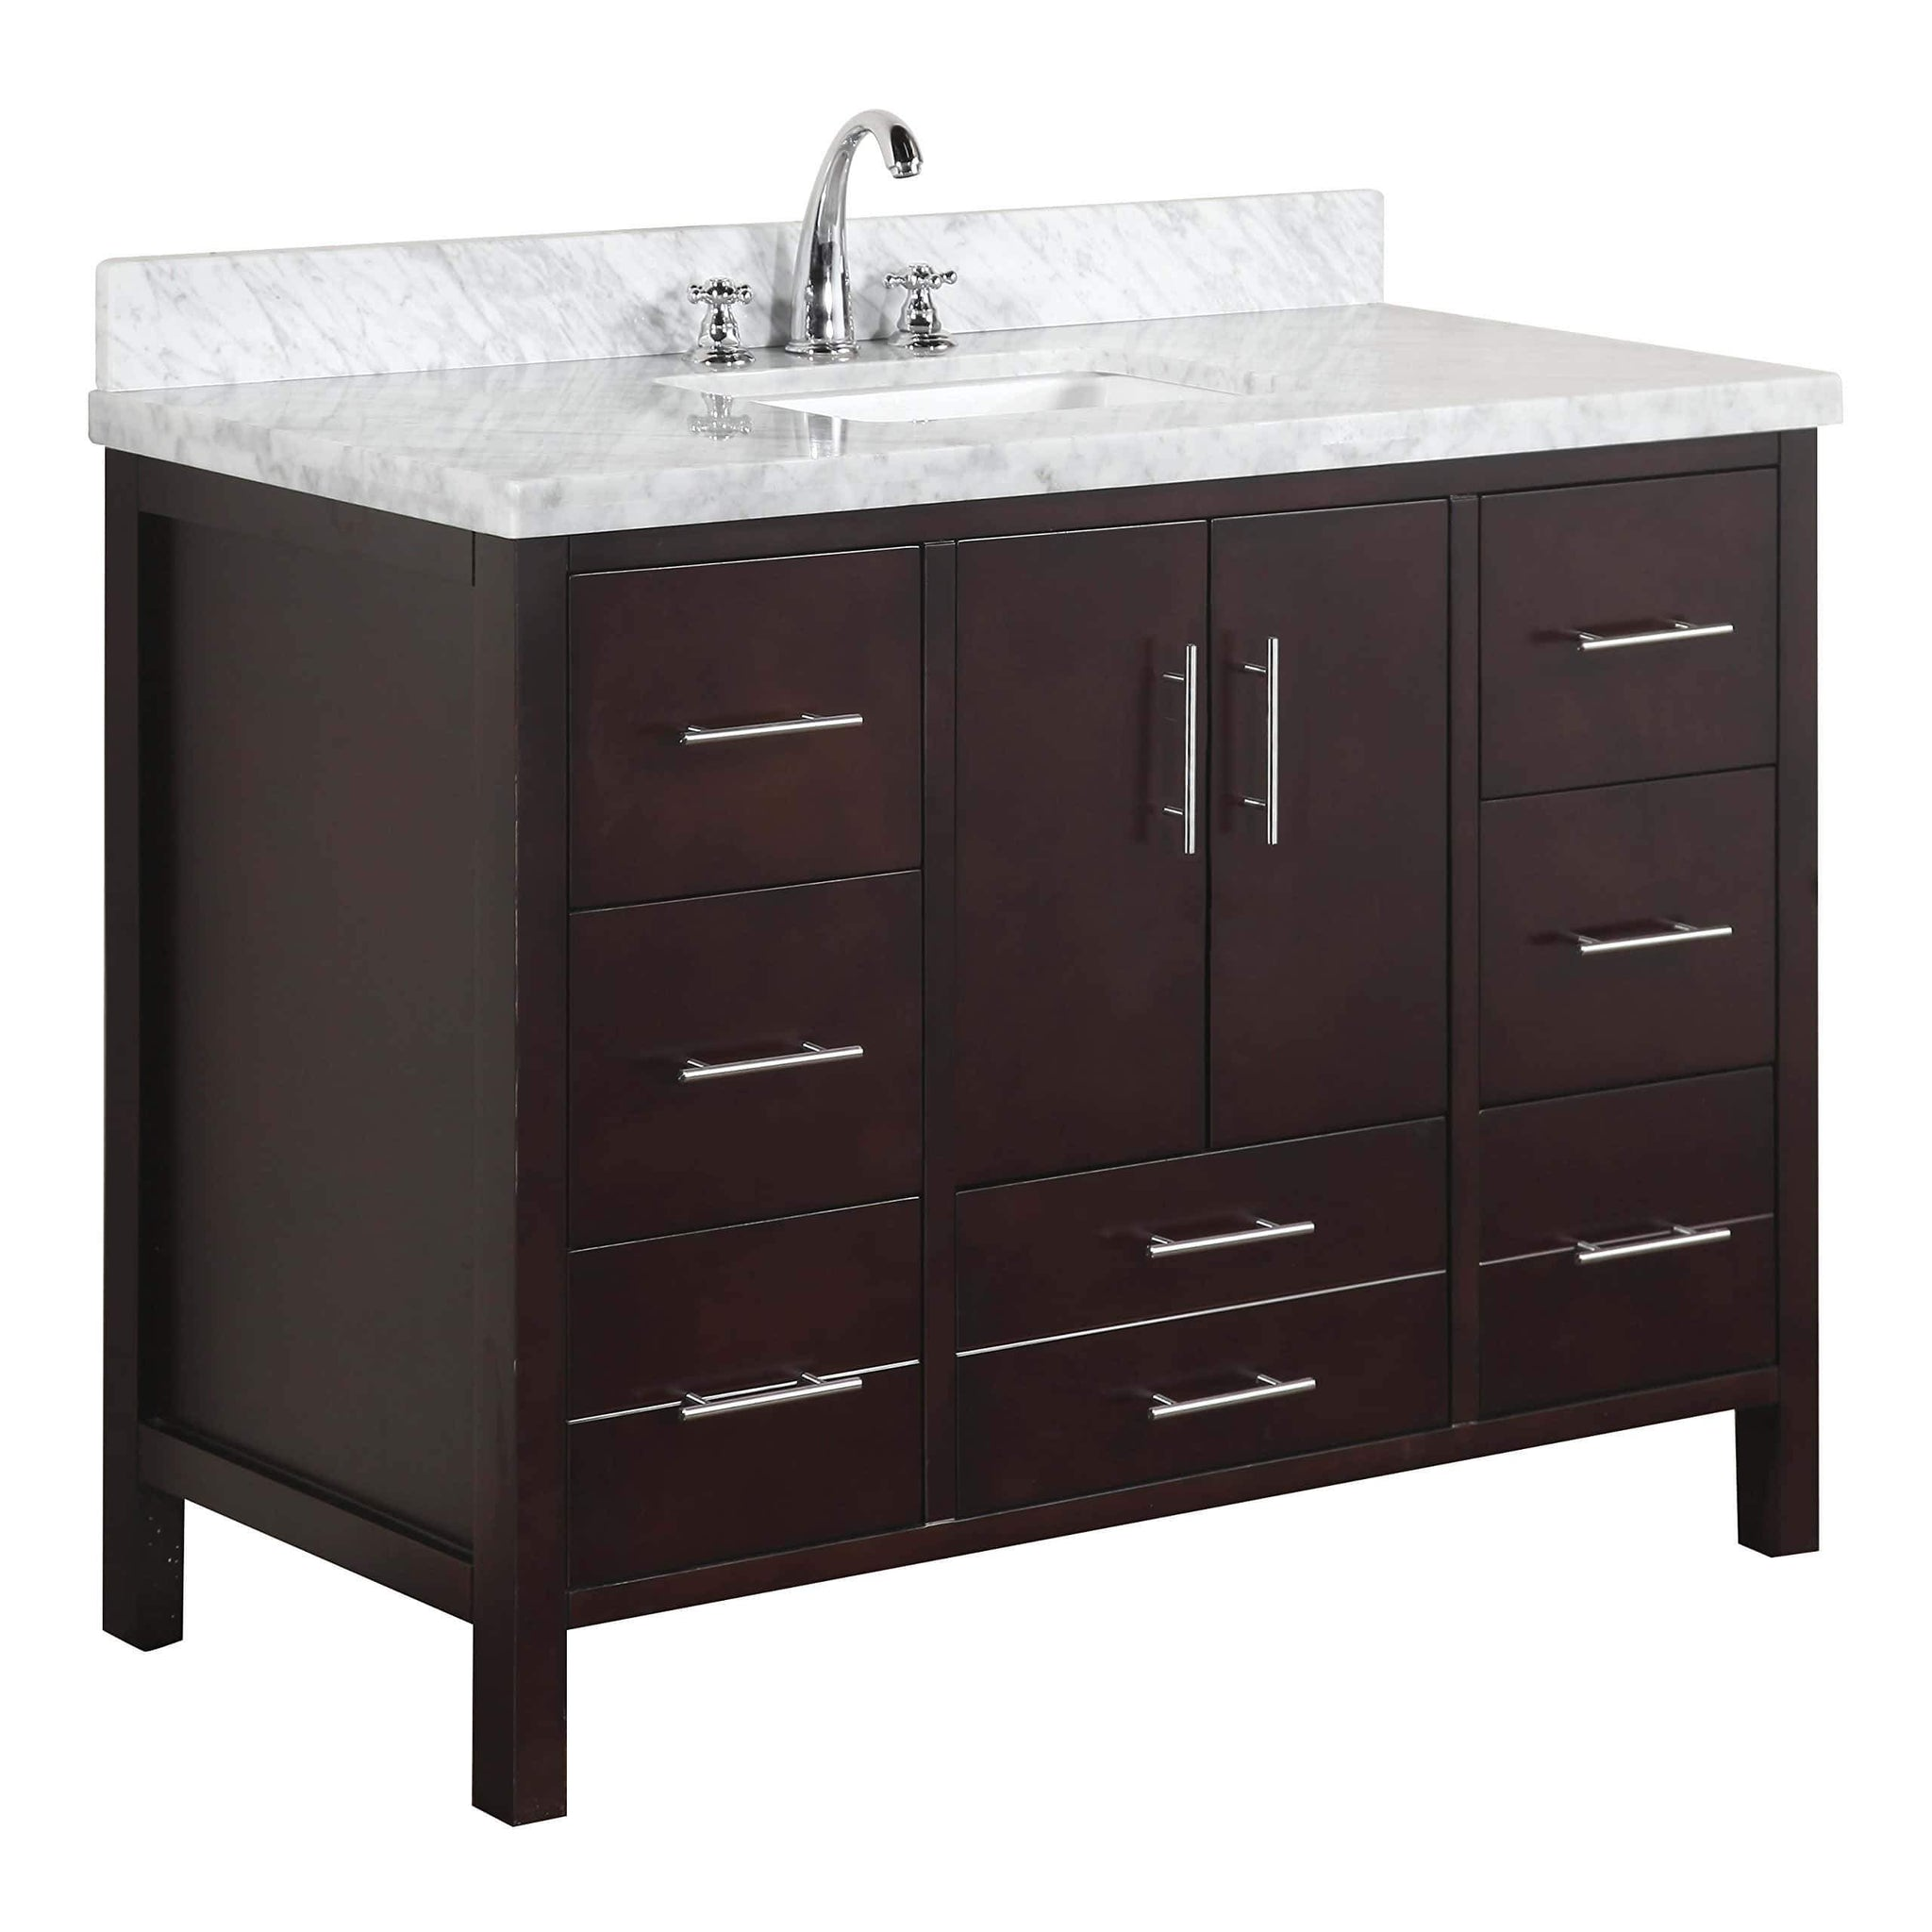 Order now kitchen bath collection kbc039brcarr california bathroom vanity with marble countertop cabinet with soft close function and undermount ceramic sink carrara chocolate 48